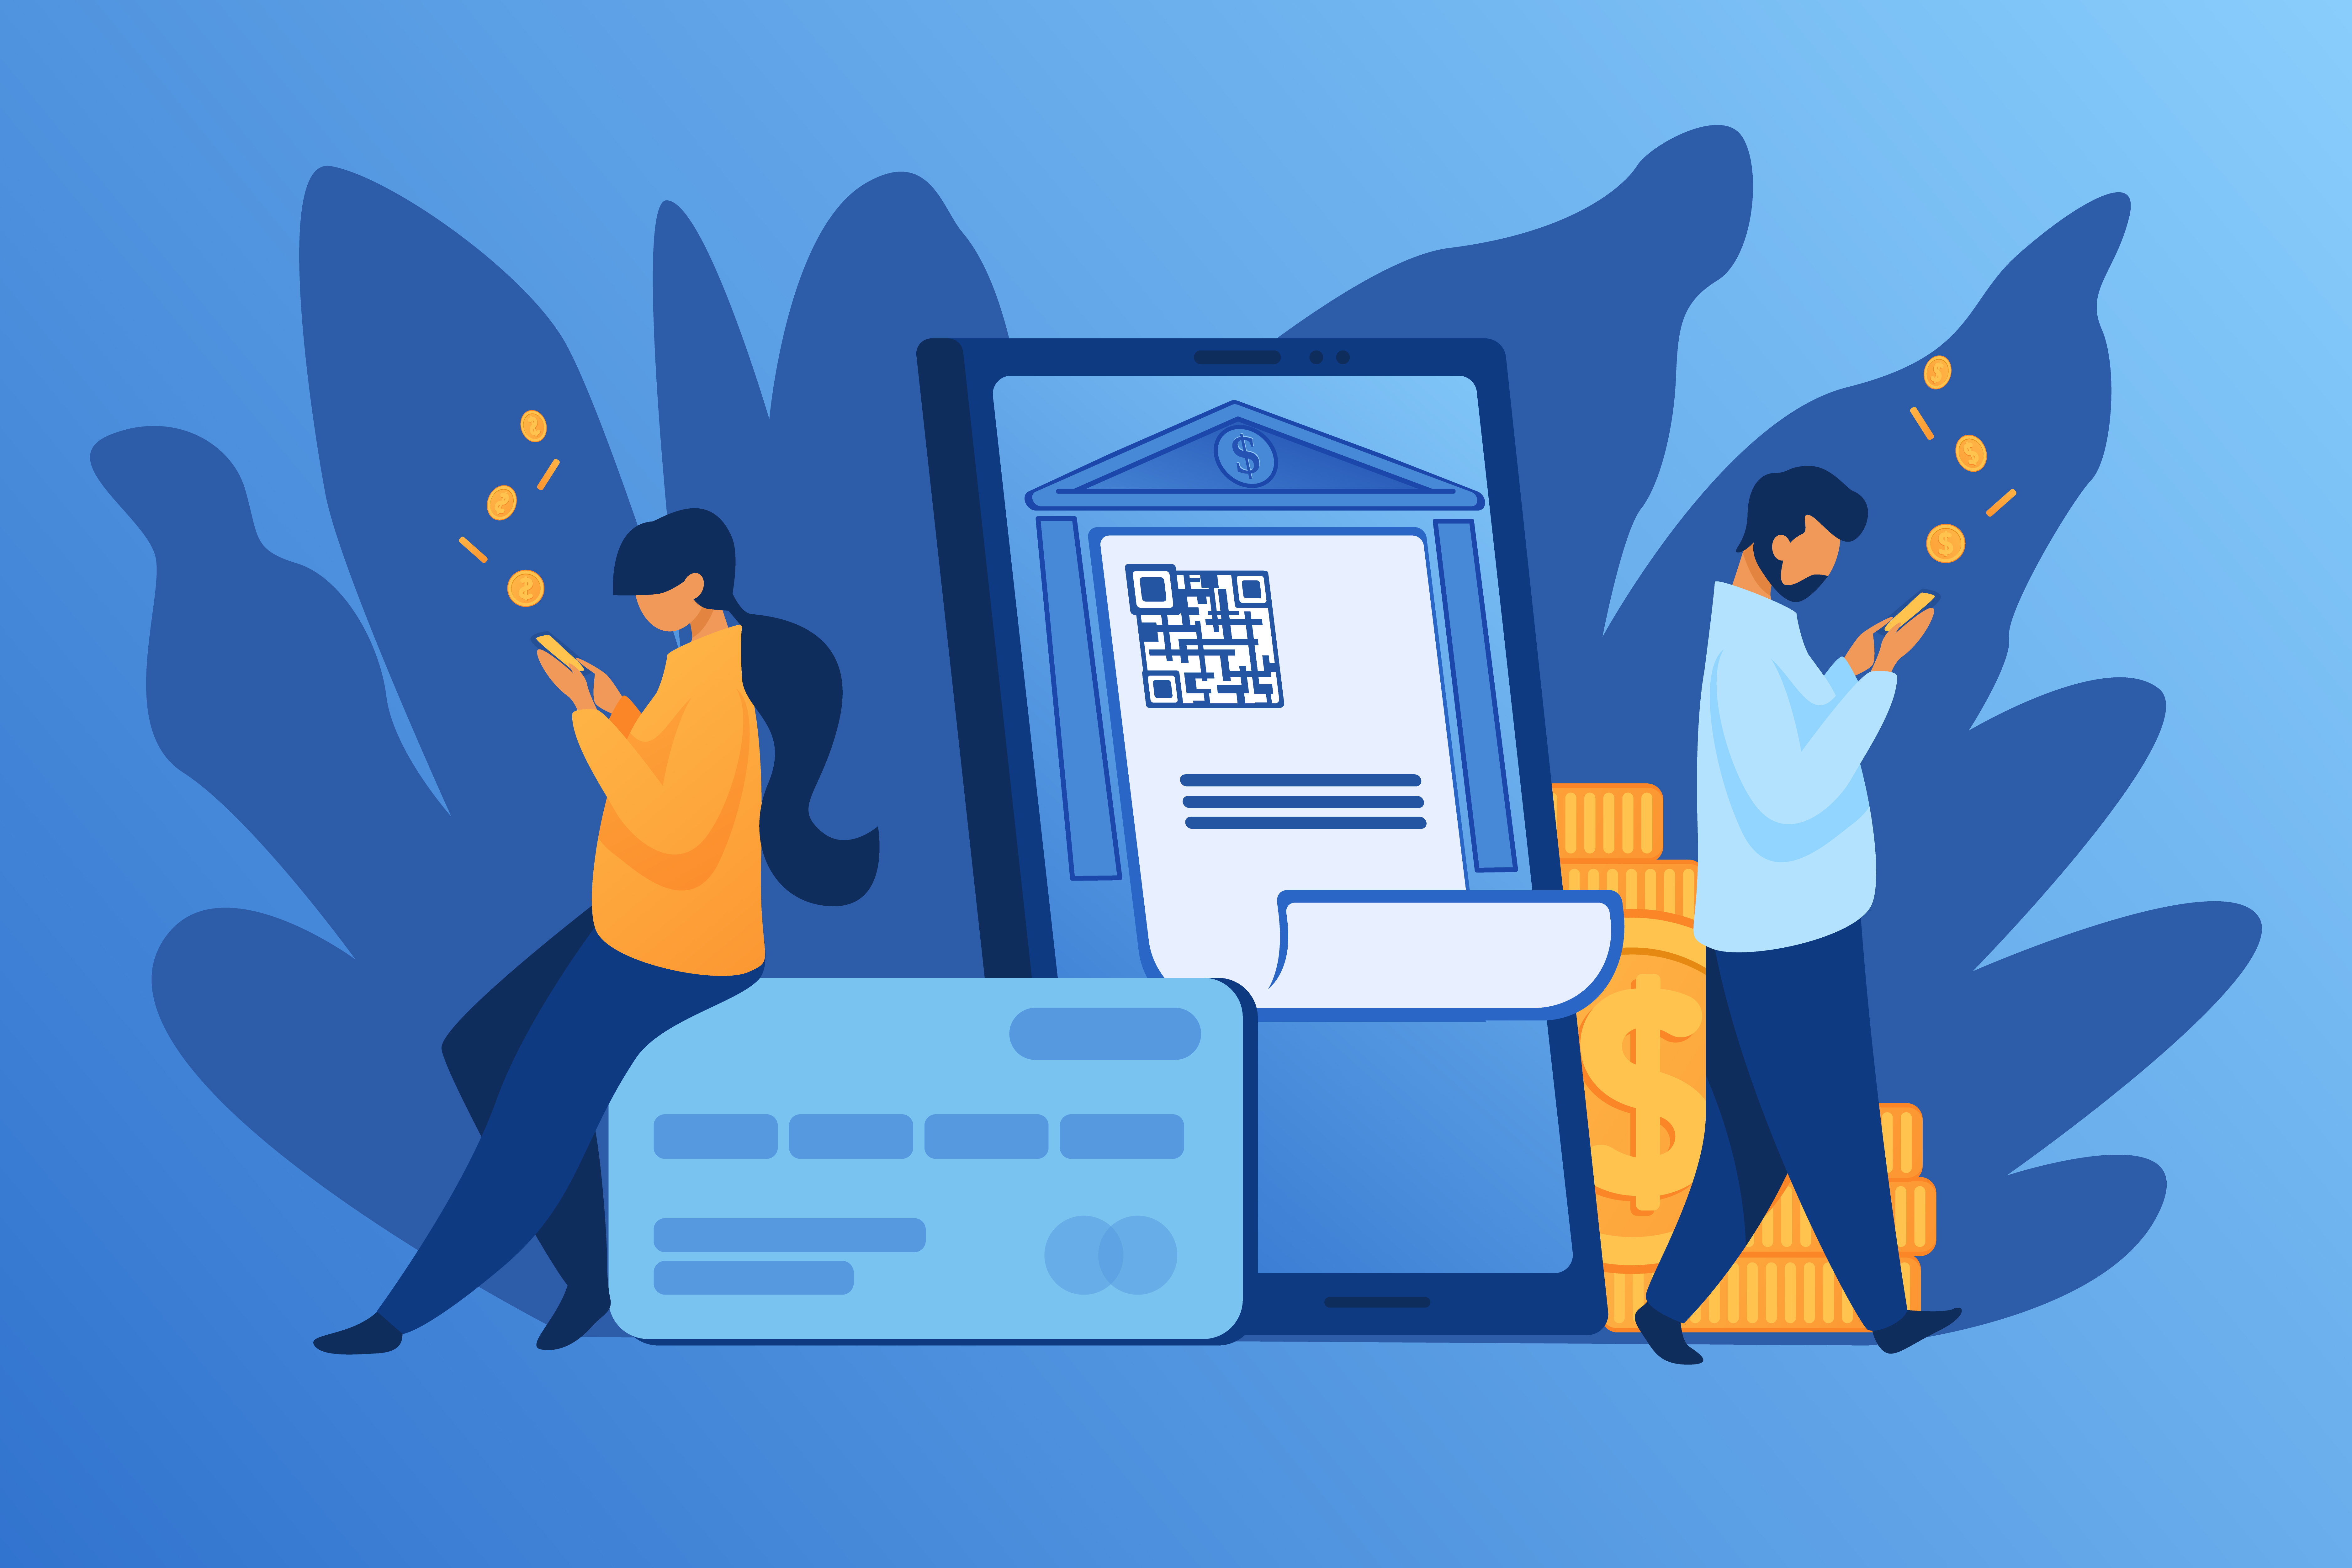 Strengthen your mobile banking security with these golden rules